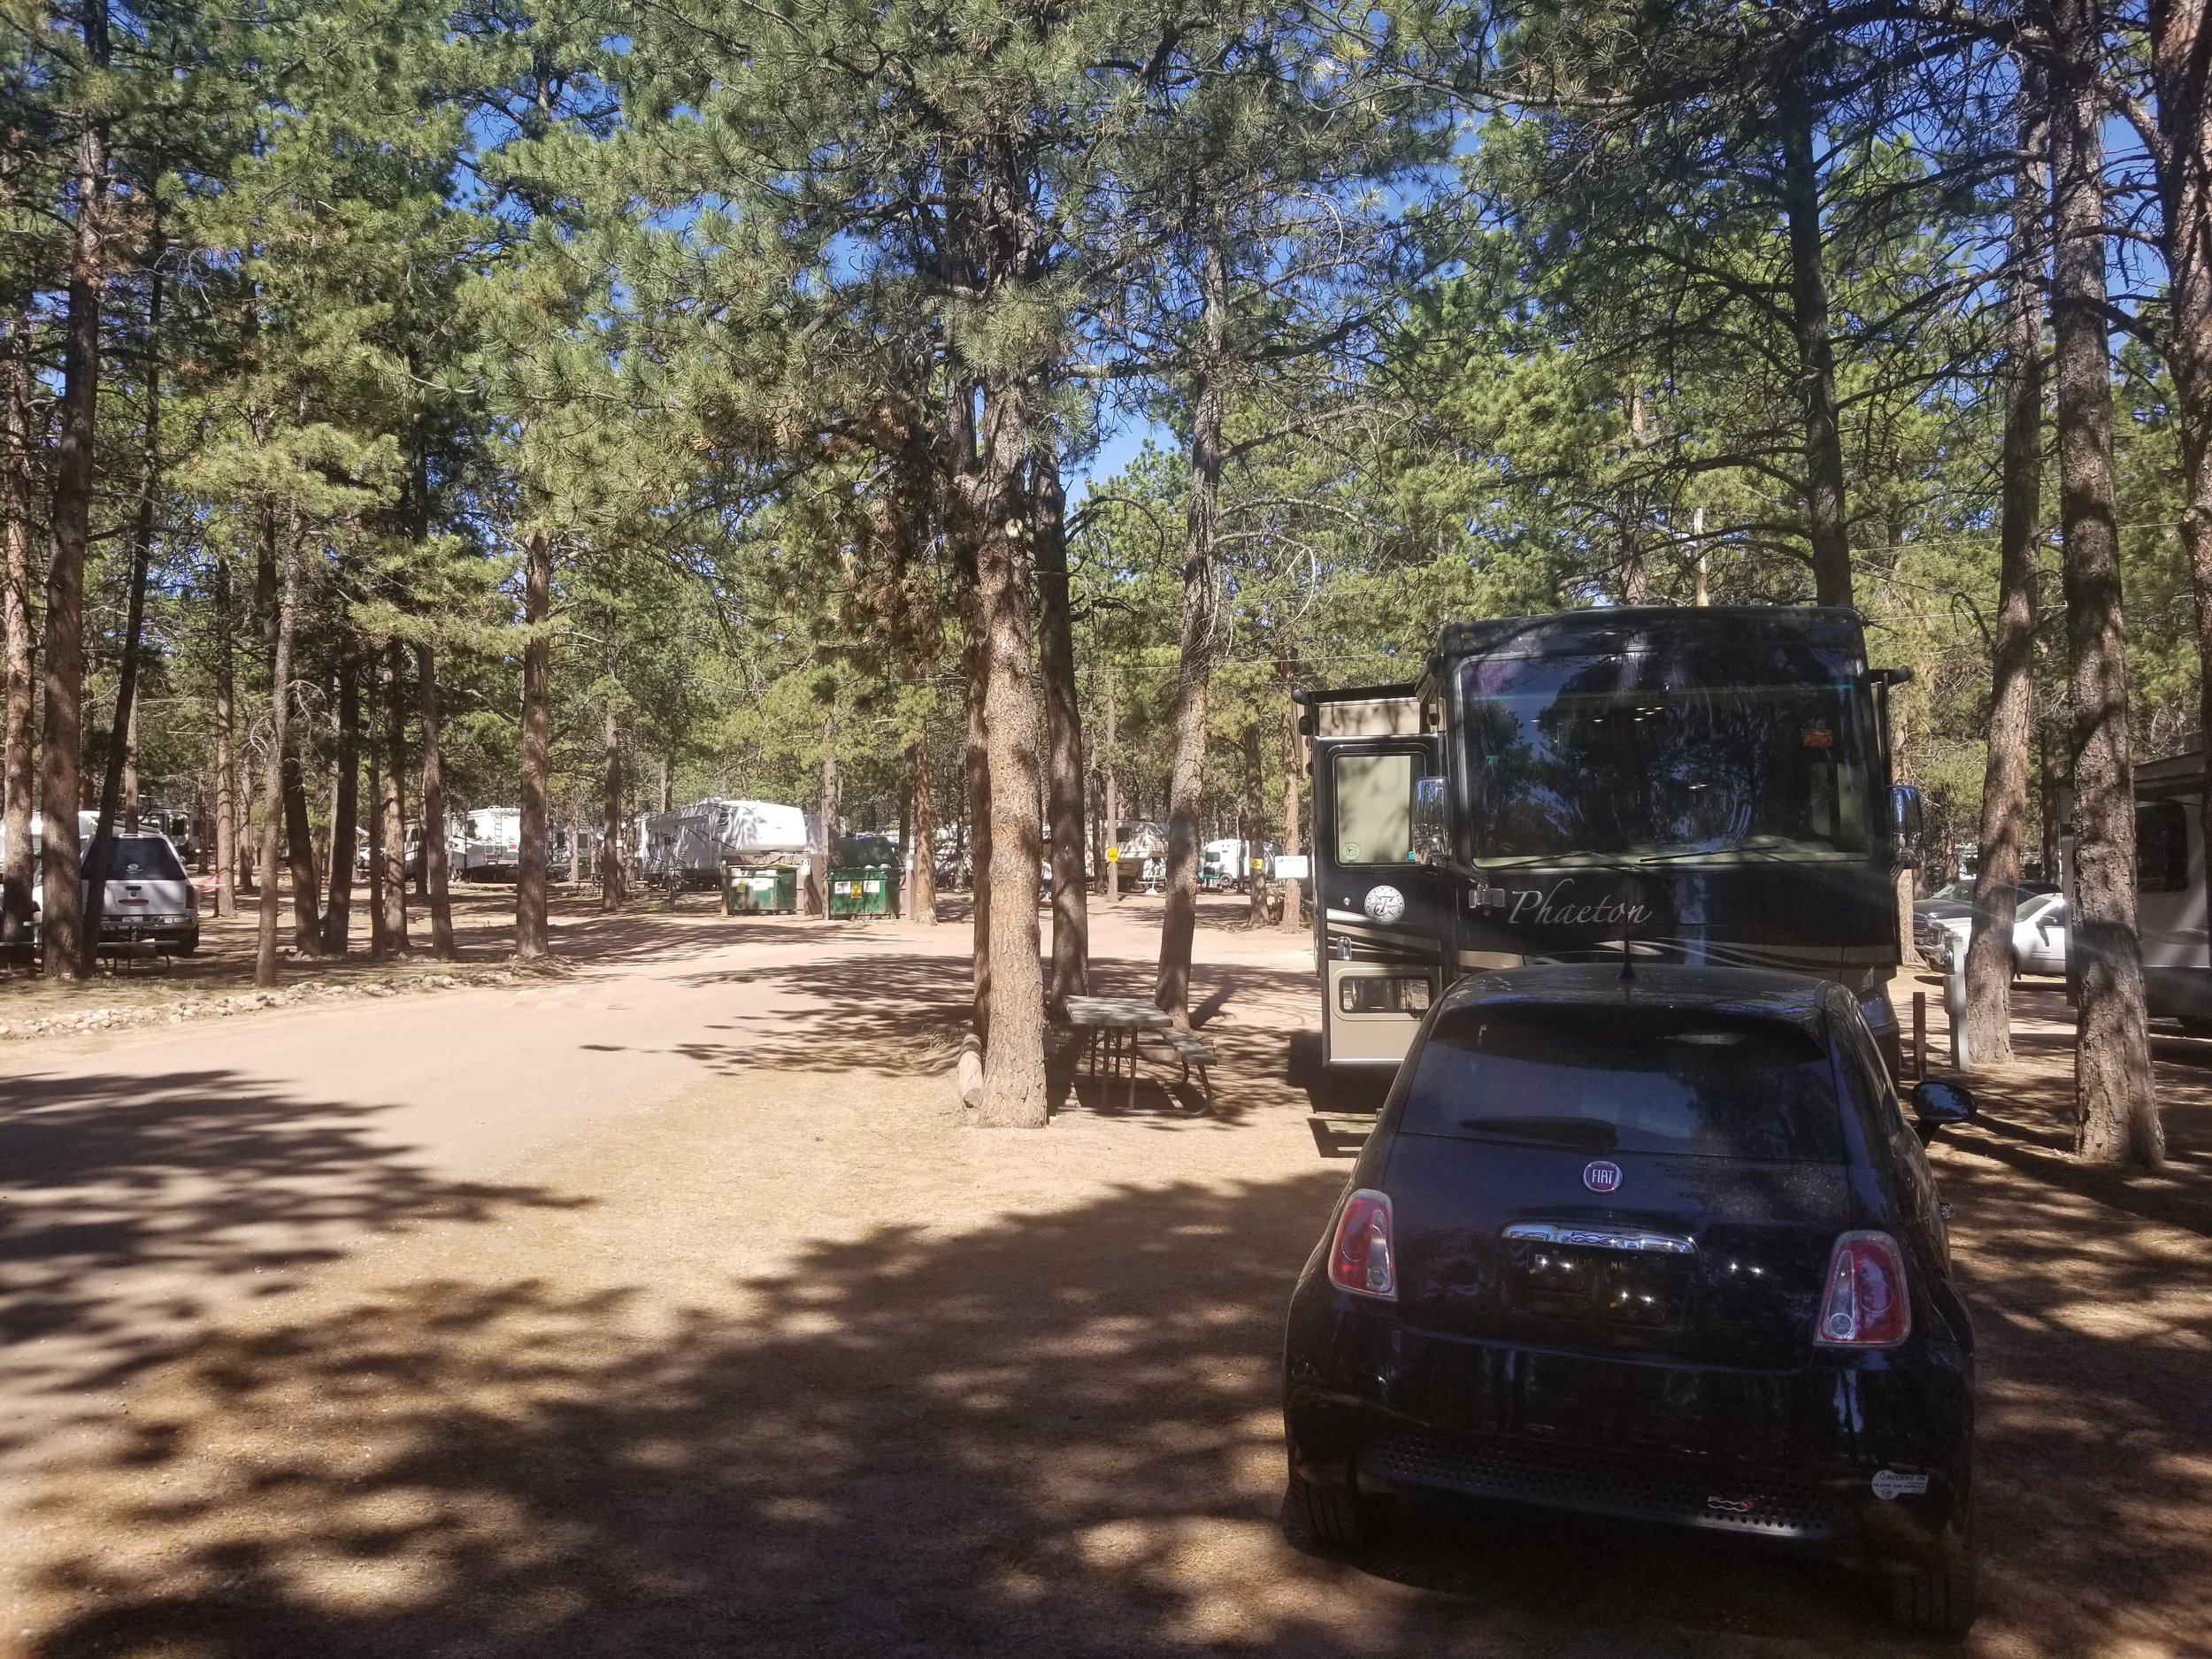 Our spot at Diamond Campground and RV Park